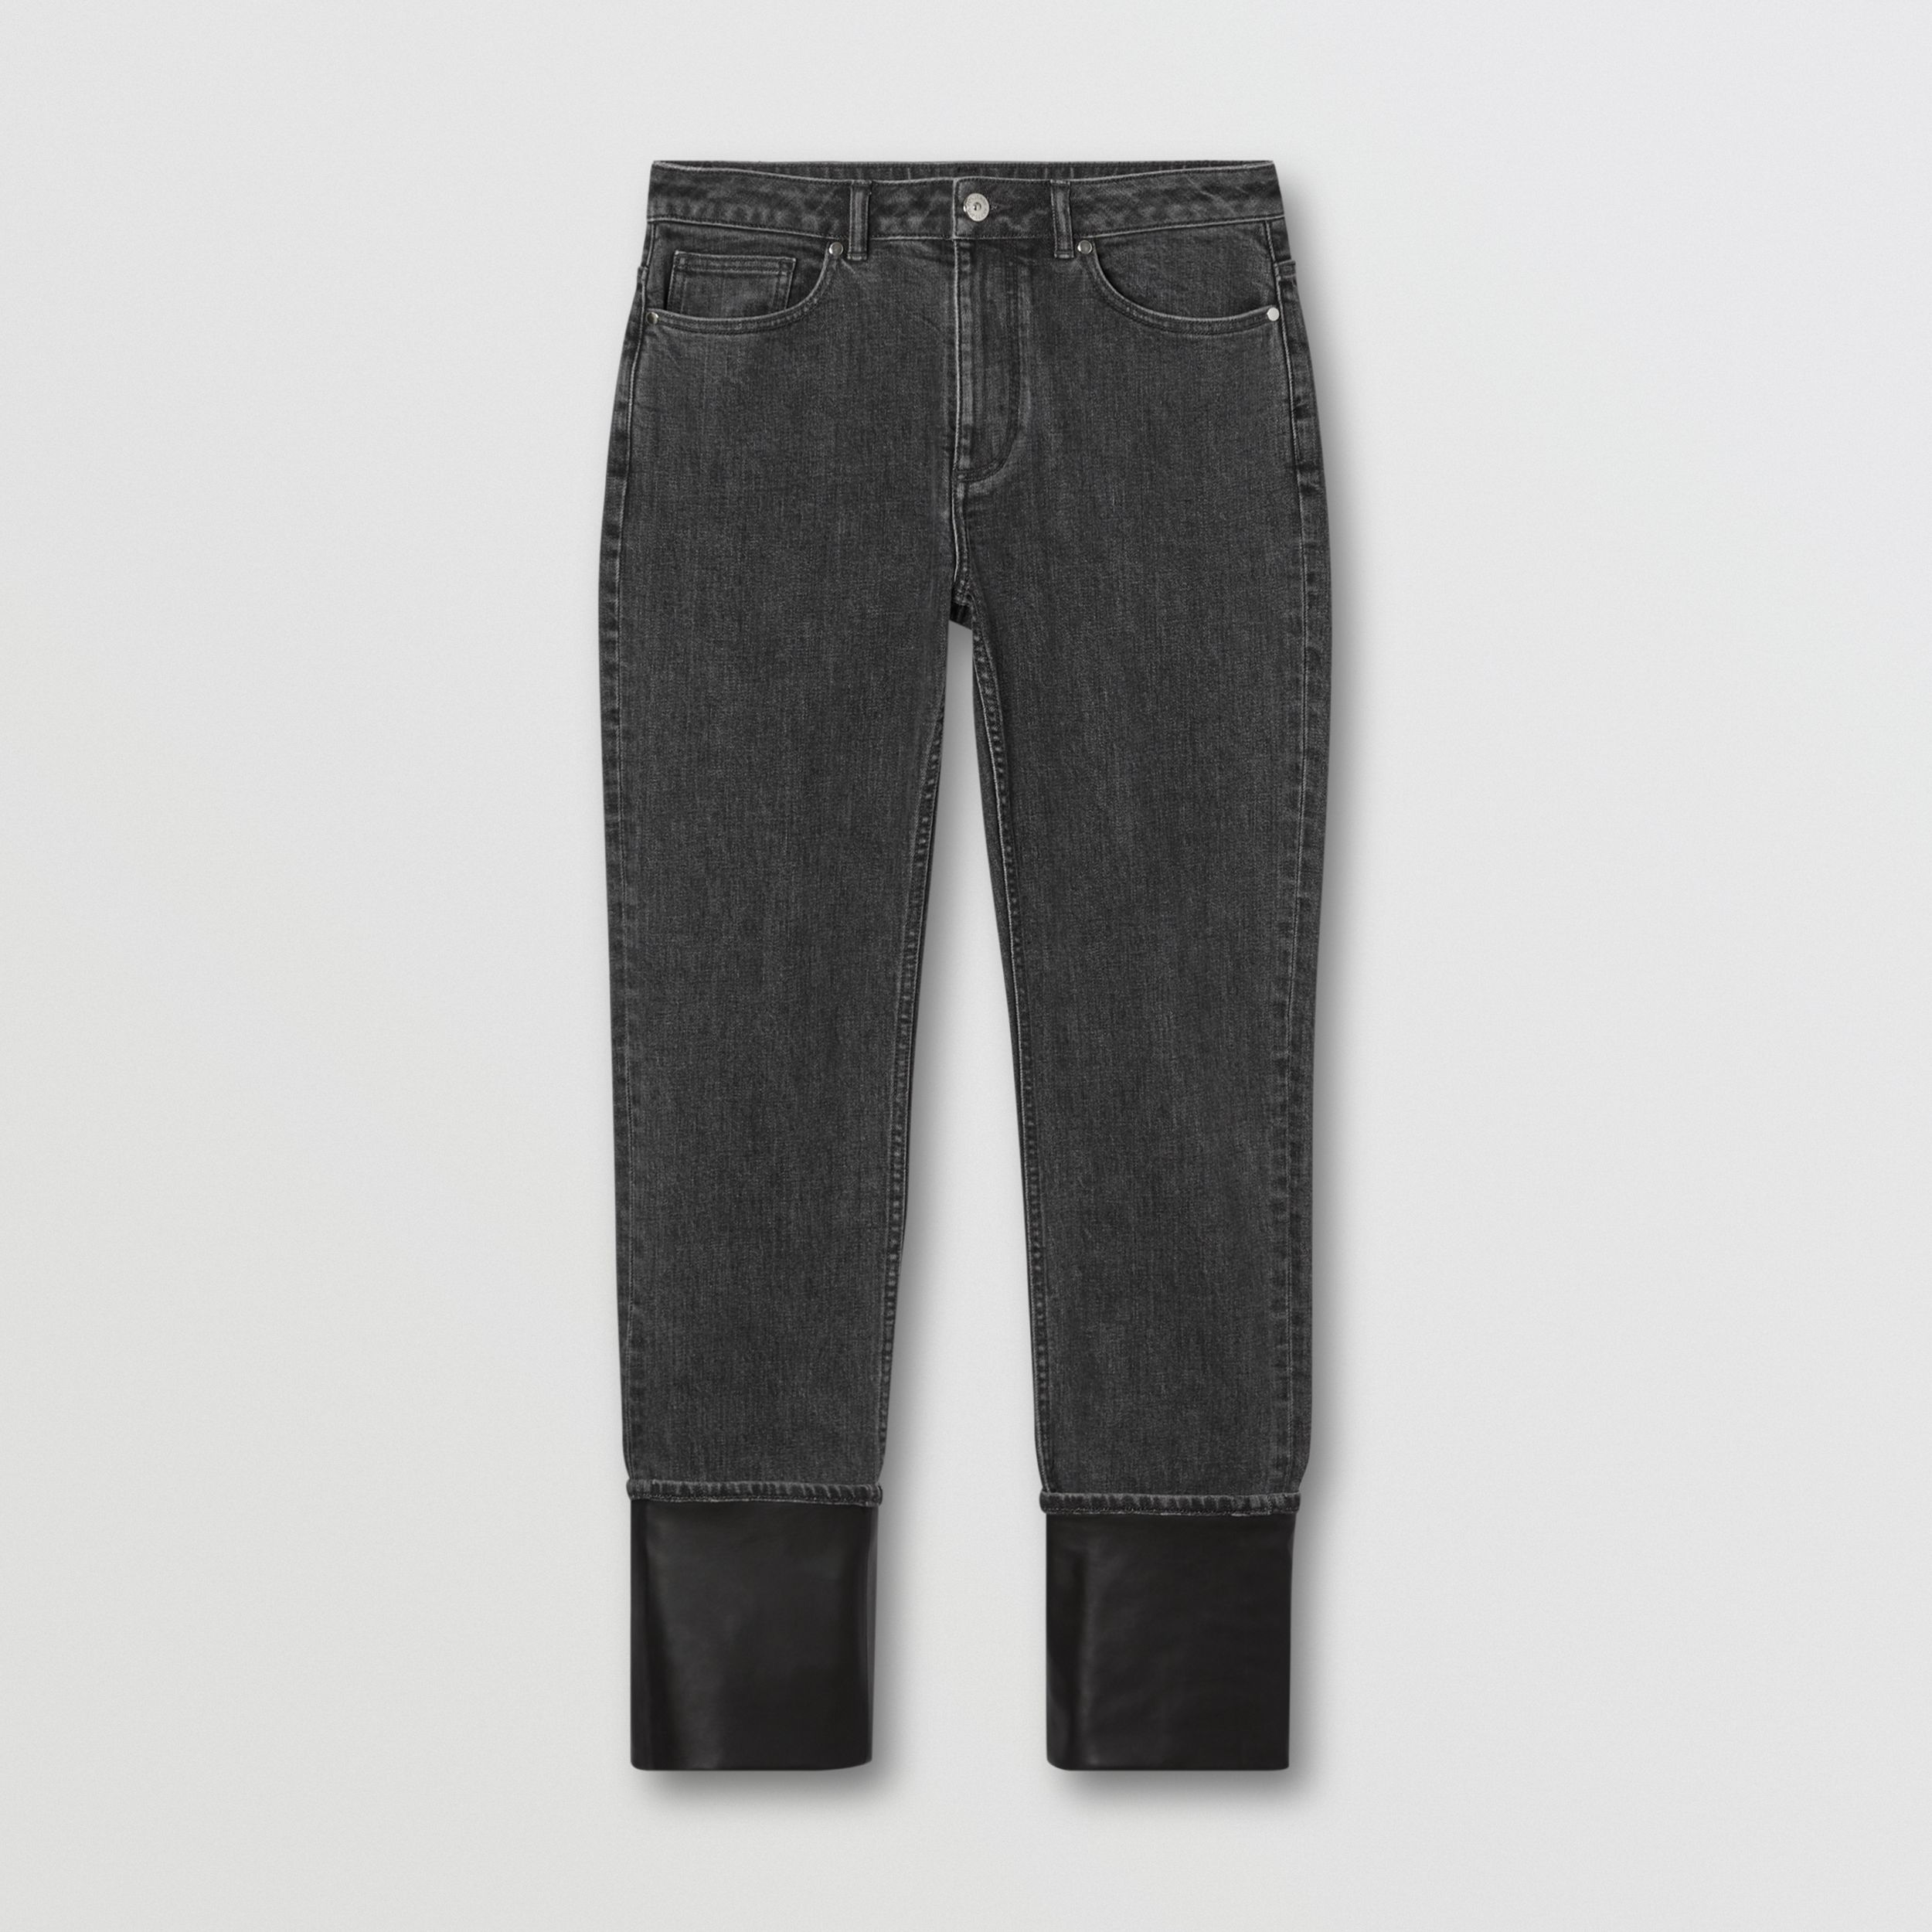 Straight Fit Contrast Cuff Washed Jeans in Grey - Women | Burberry - 4